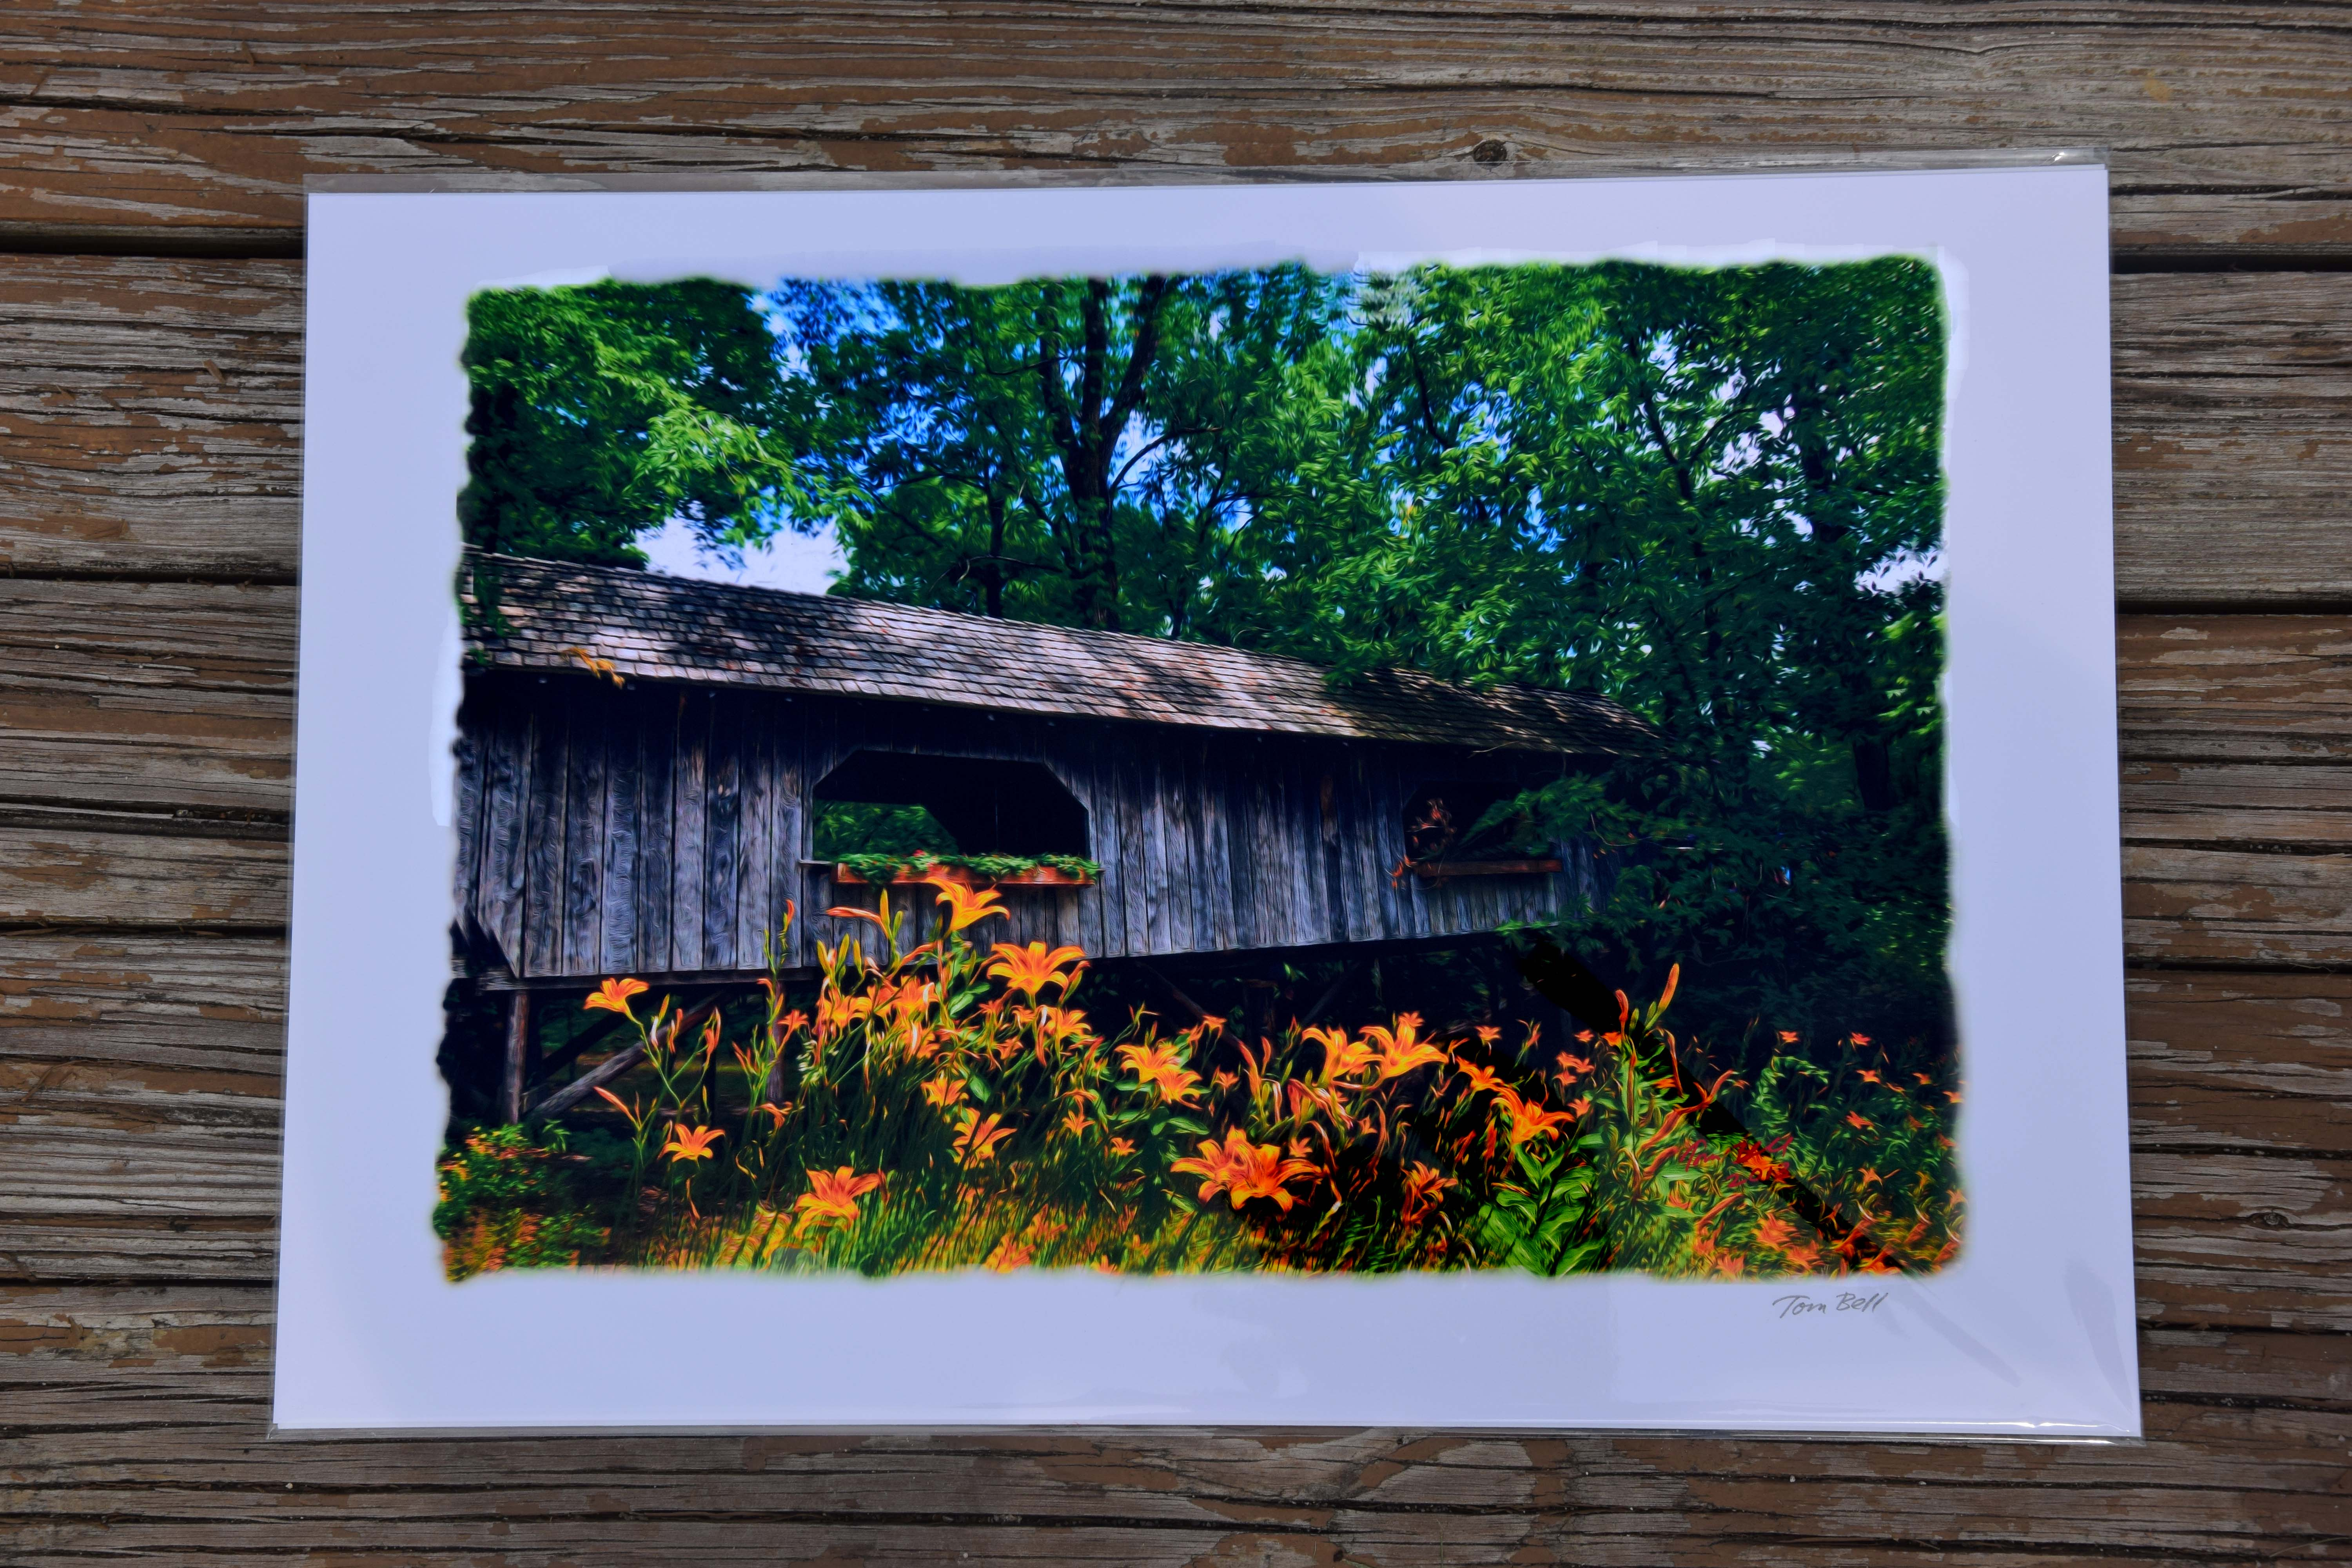 Covered Bridge by Tom Bell